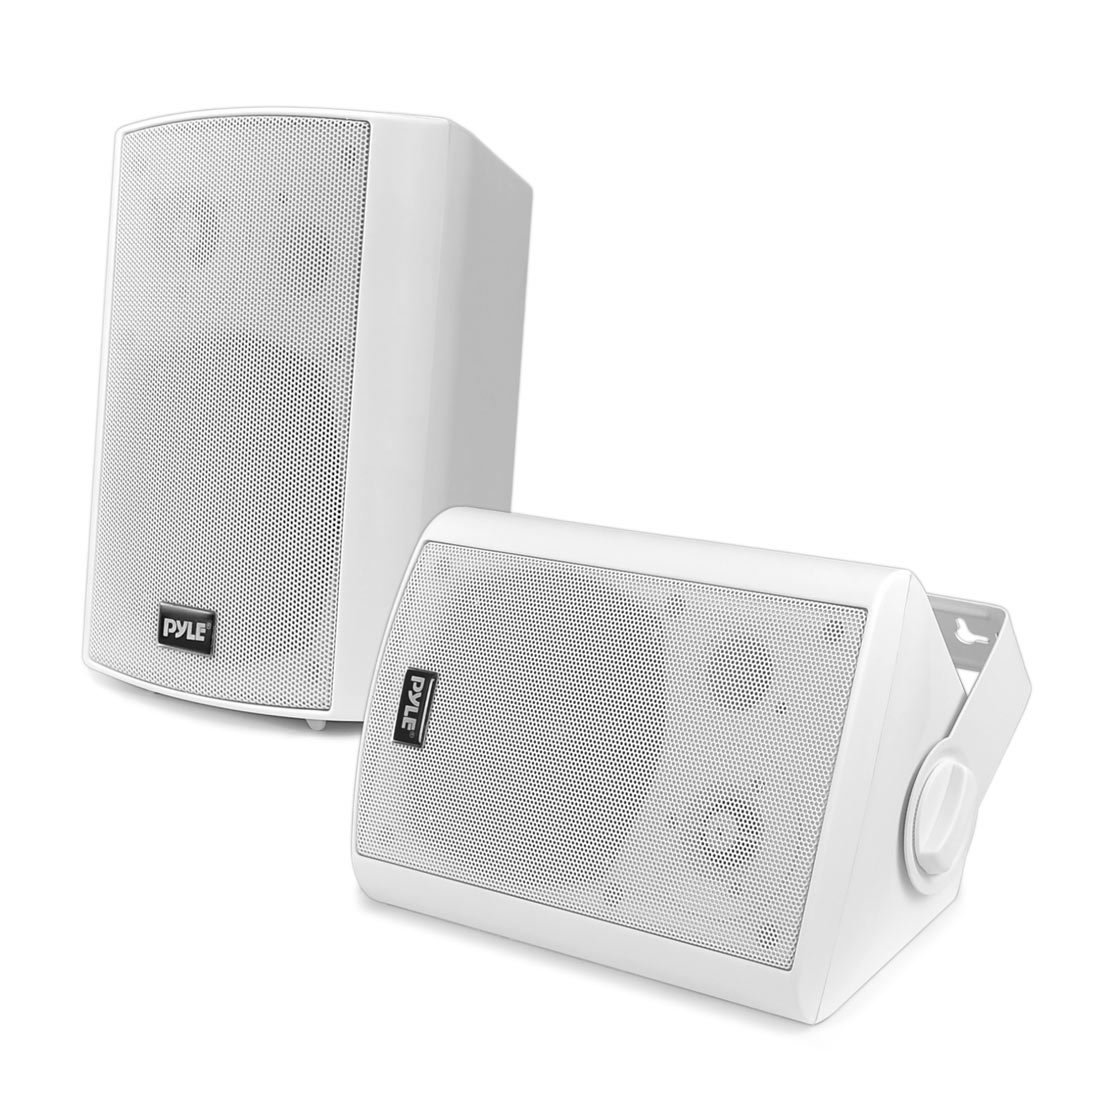 Amazon.com: Pyle PDWR51BTWT Wall Mount Waterproof & Bluetooth ...